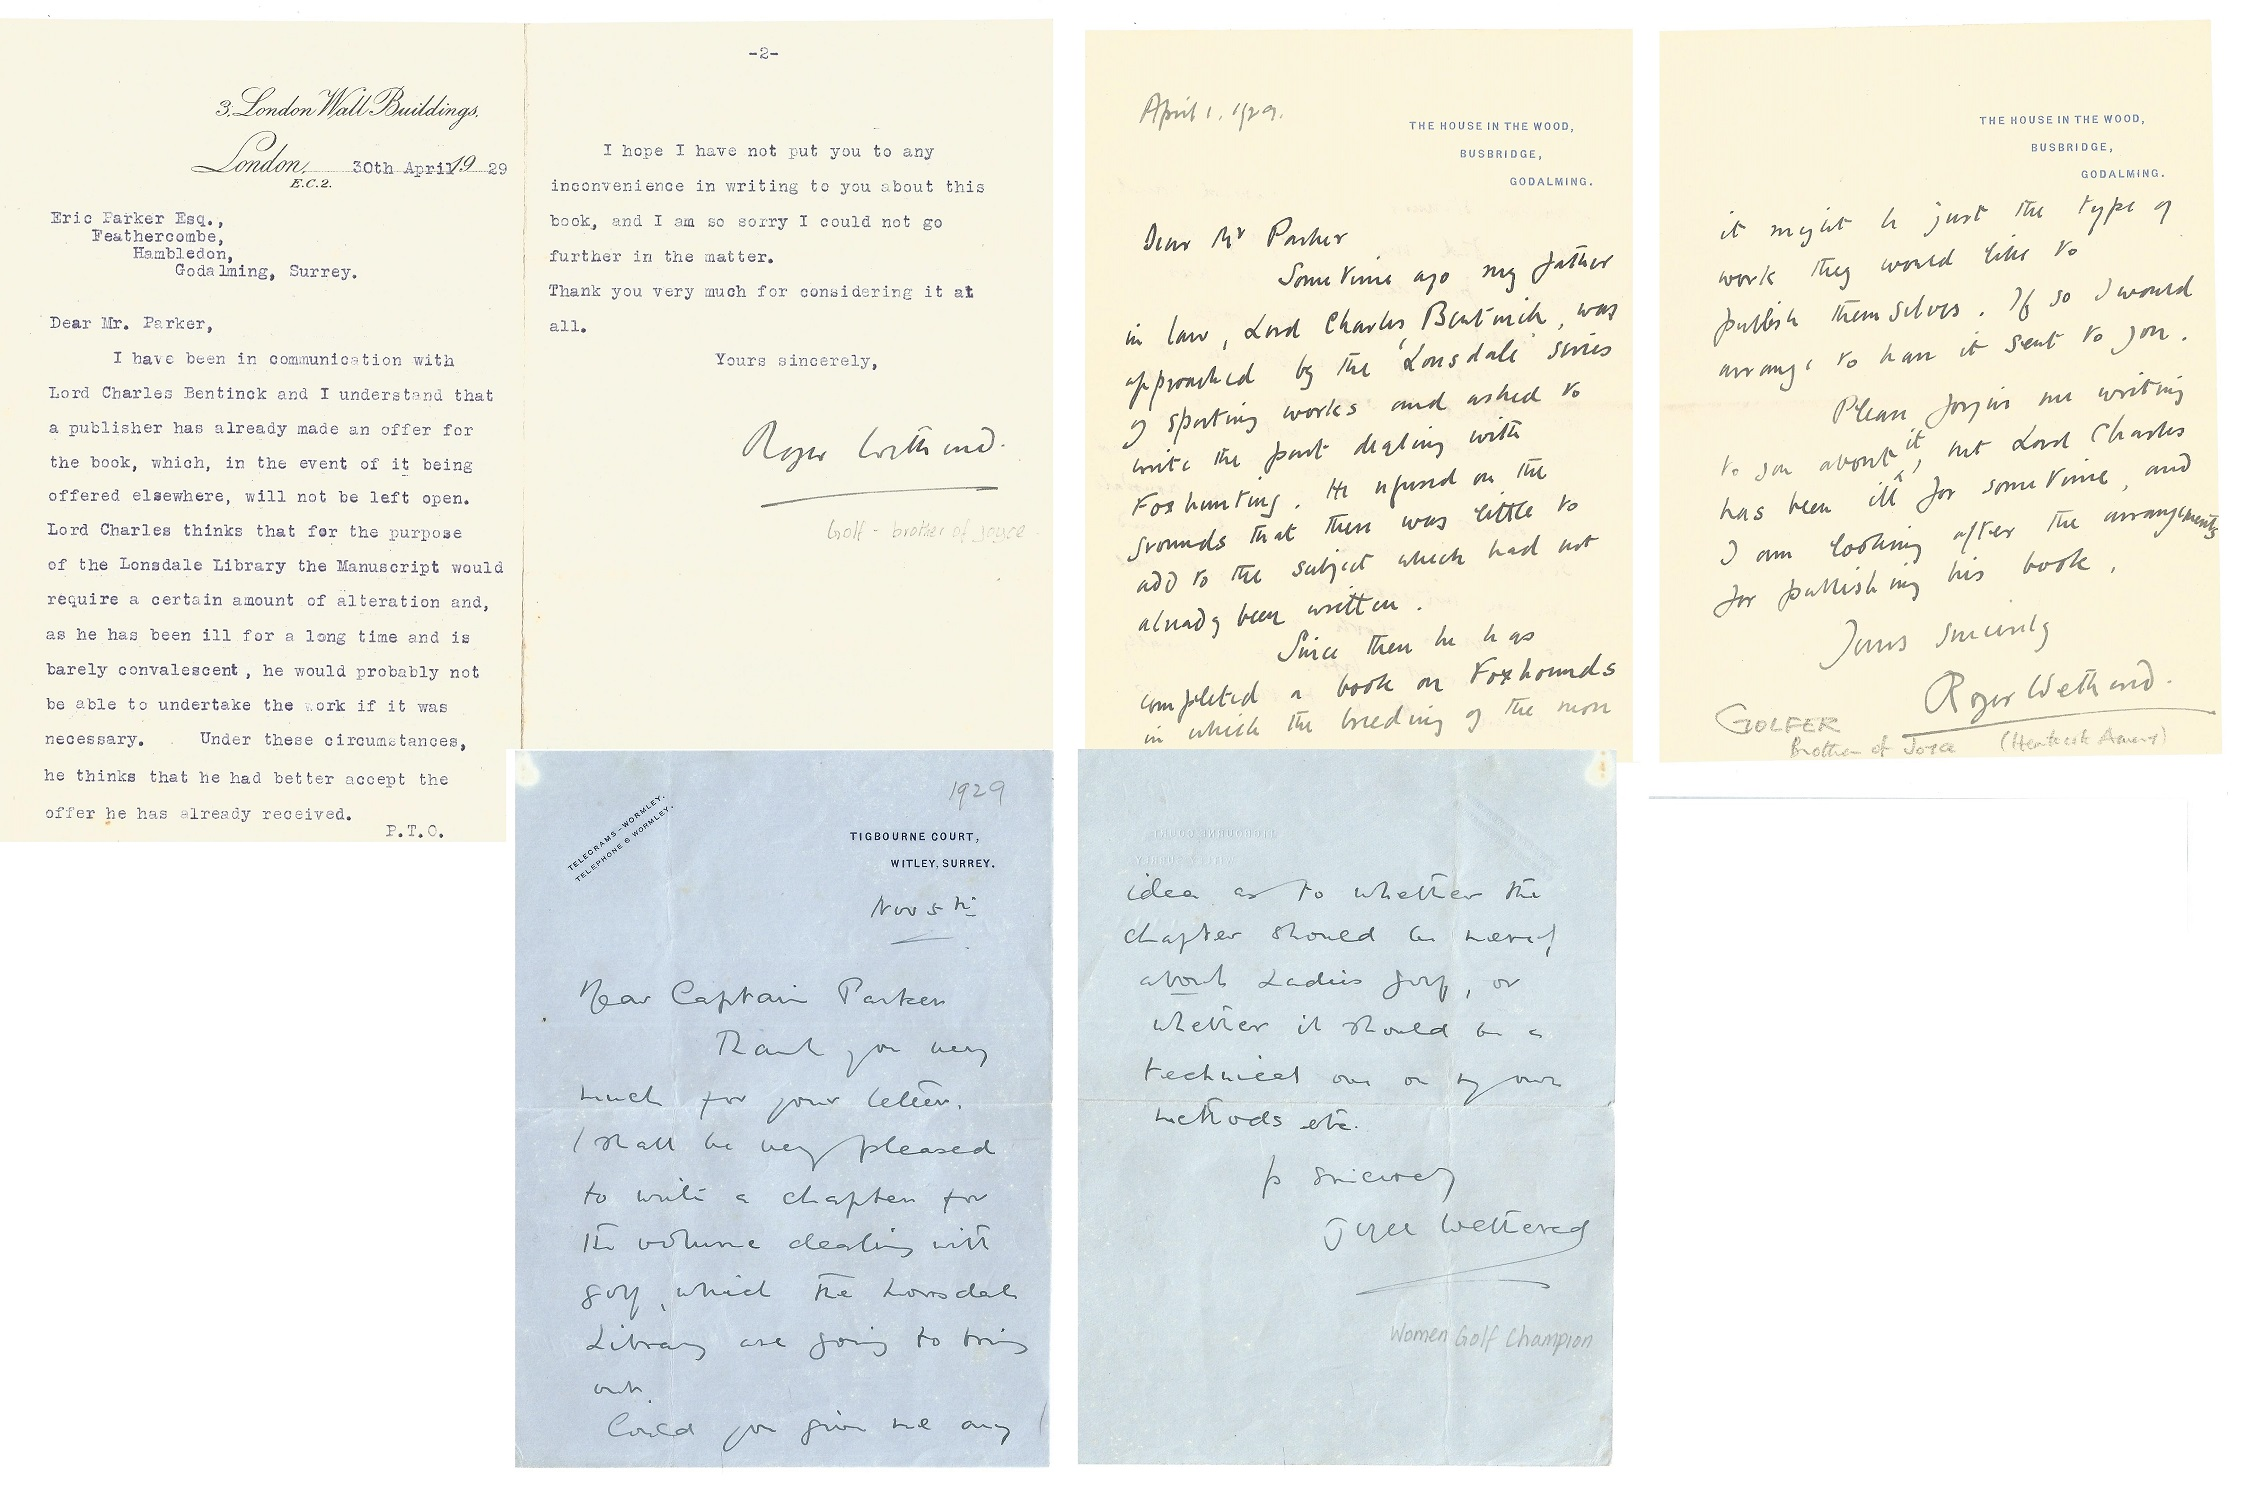 Roger & Joyce Wethered, 2 x ALS and 1 x TLS. One letter dated 1st April 1929, the other 30th April